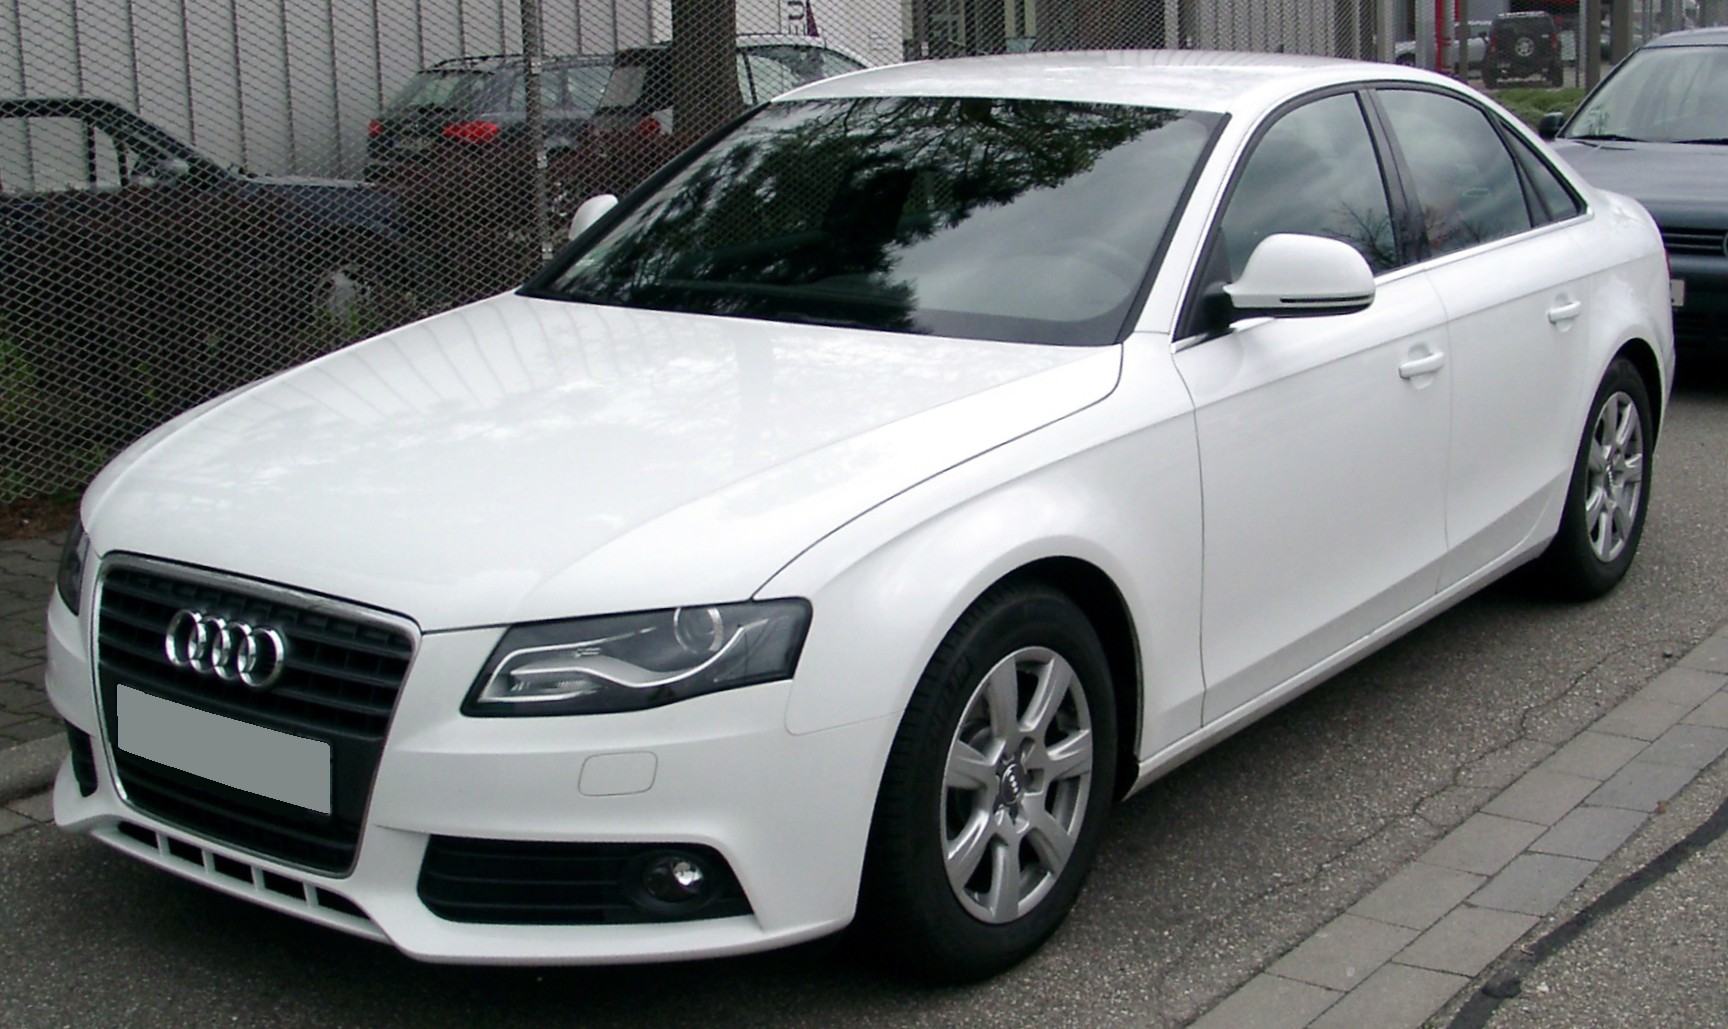 AUDI A4 - Review and photos